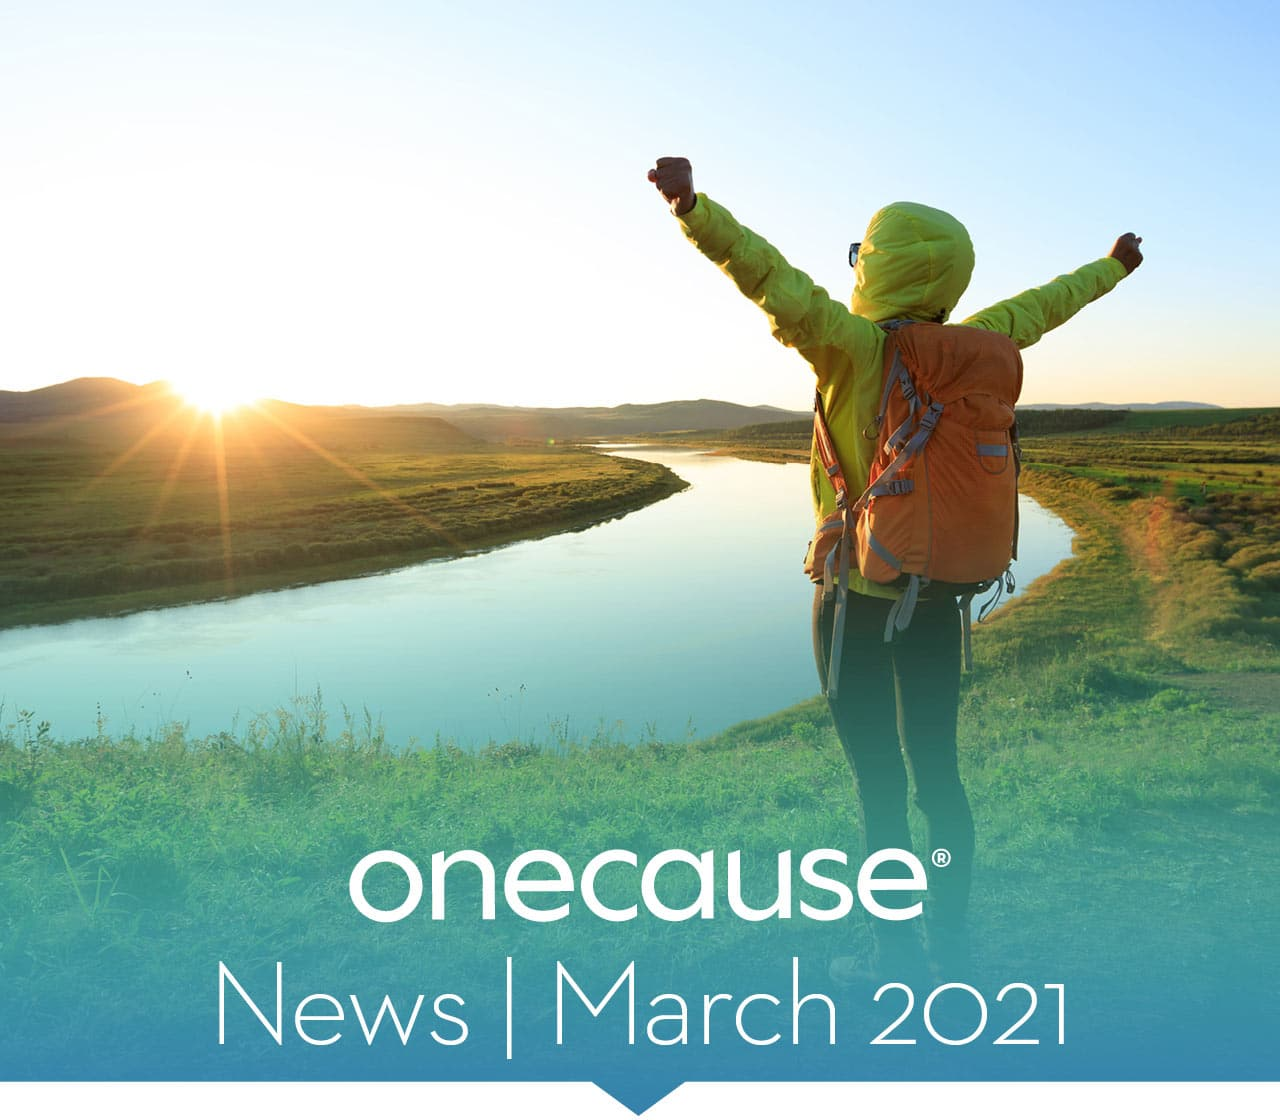 OneCause News March 2021